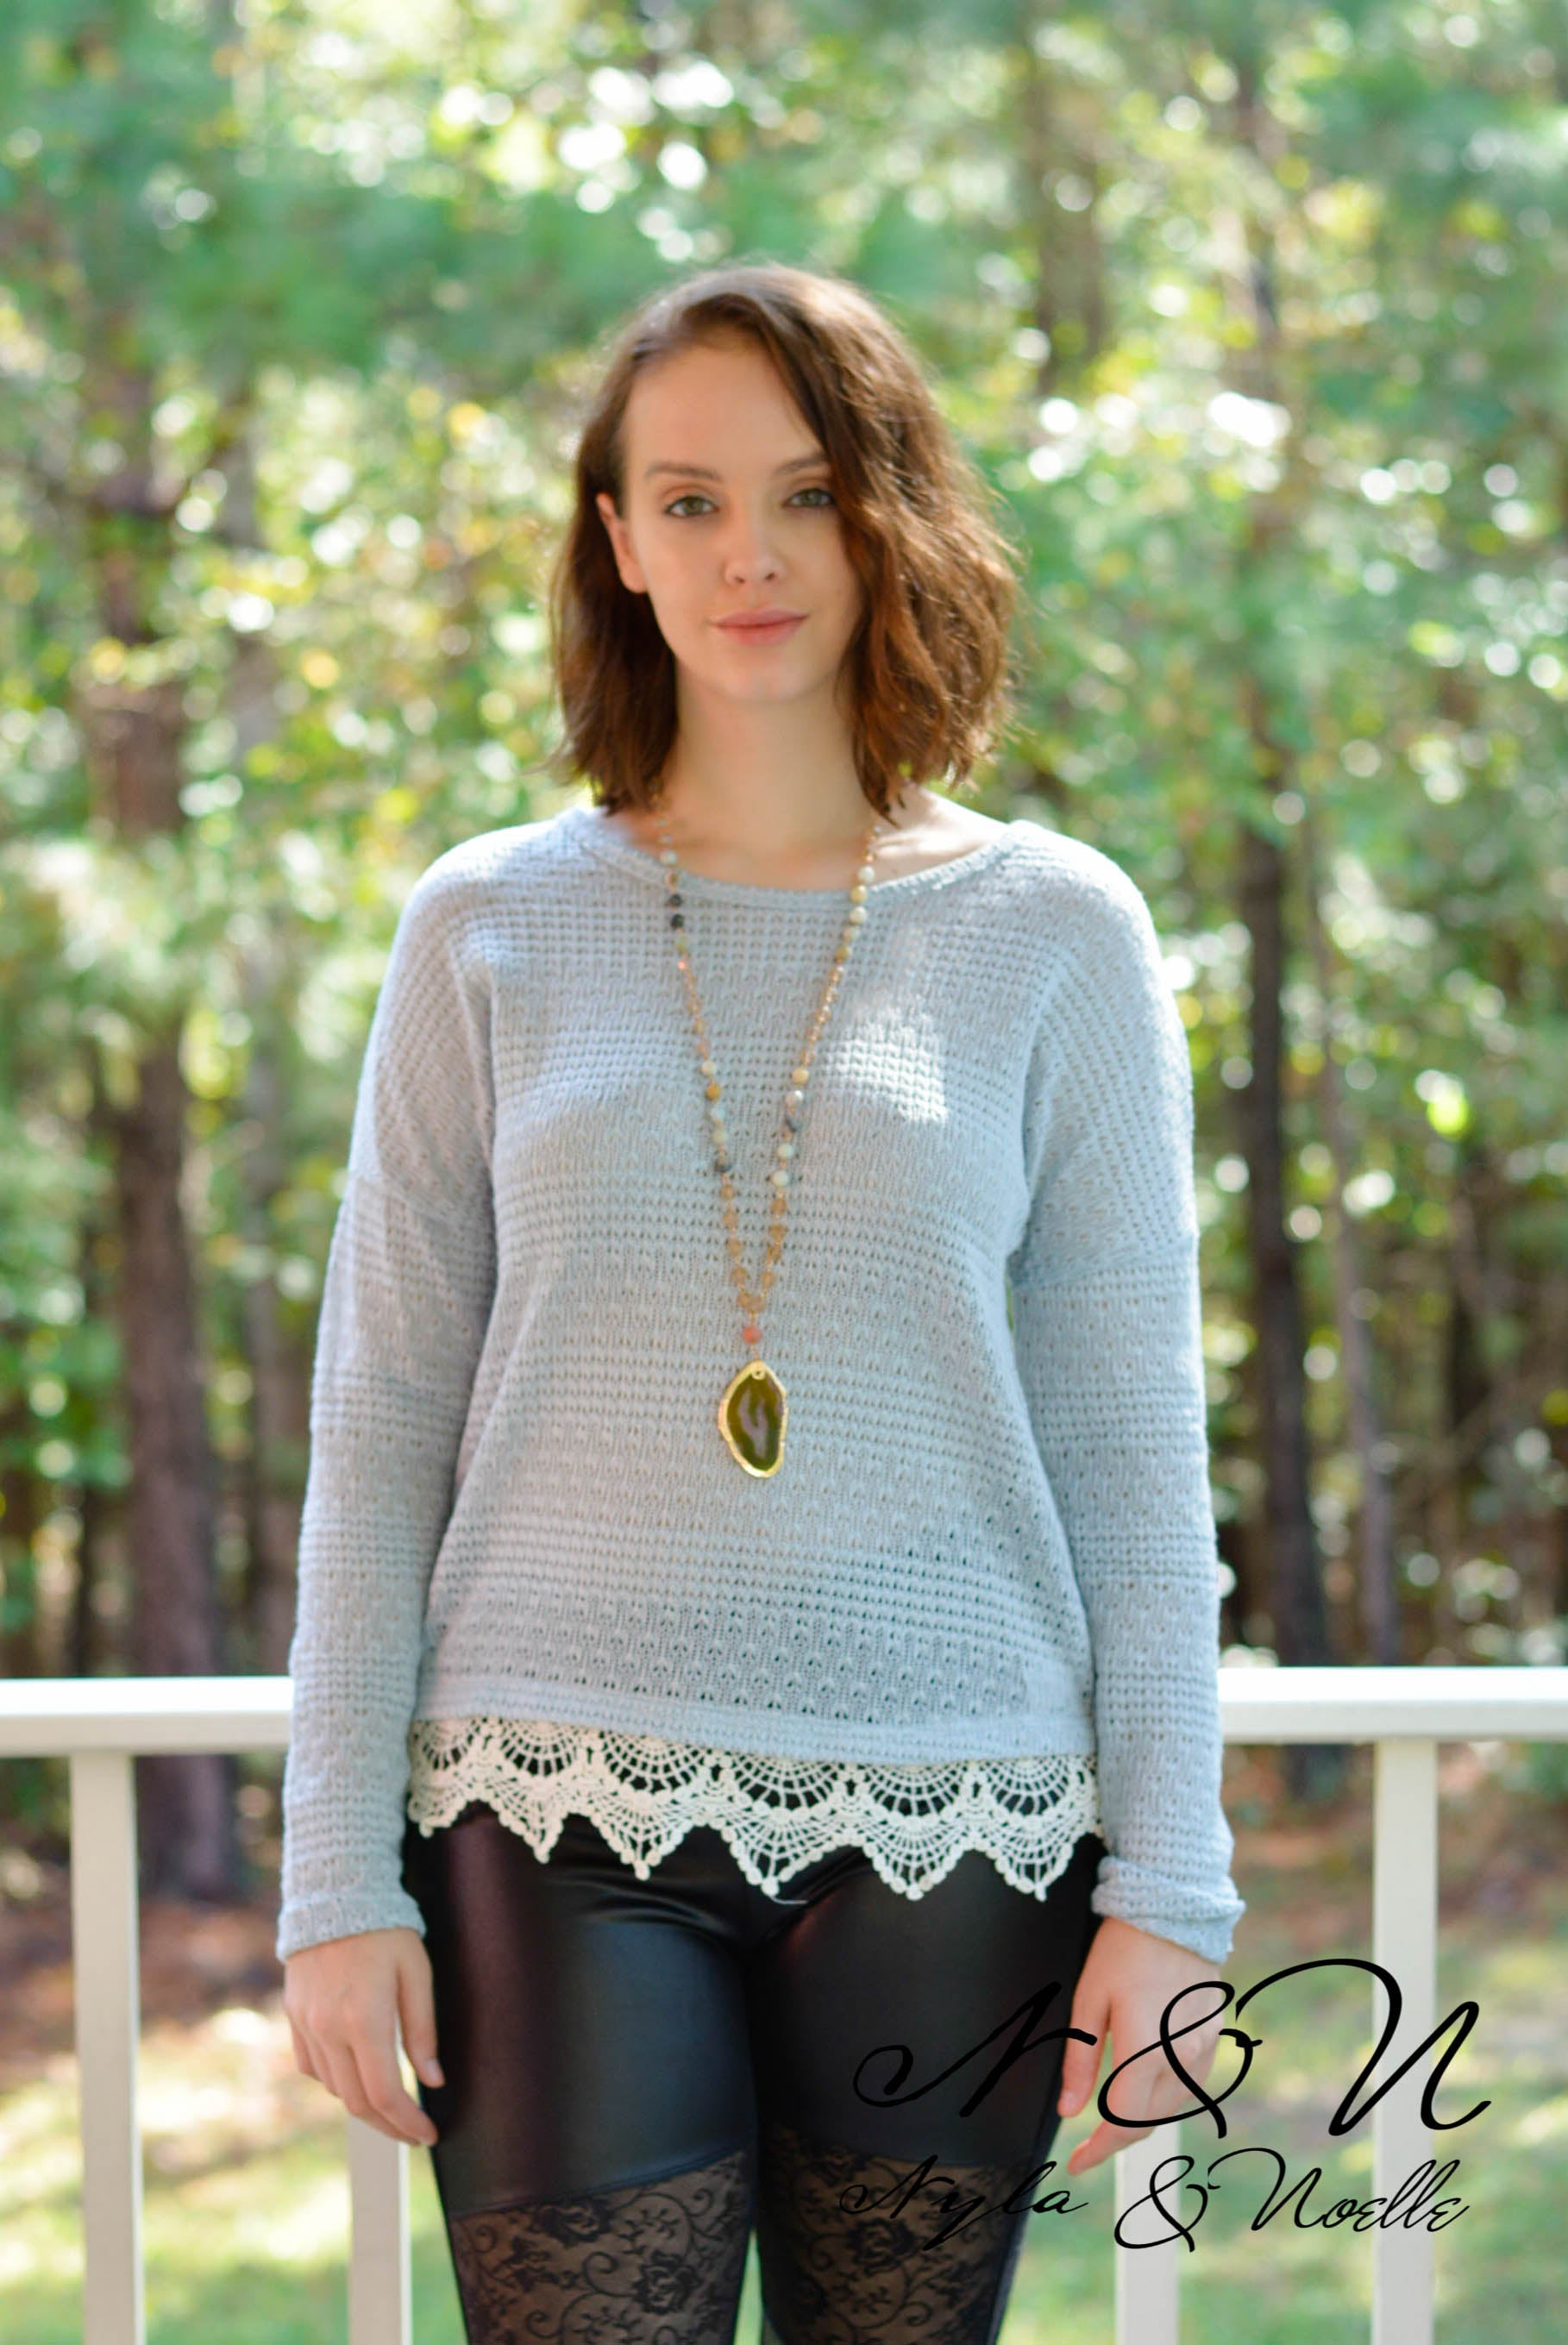 VERANDIA - Vintage Style Light Knit Top with Lace Edge